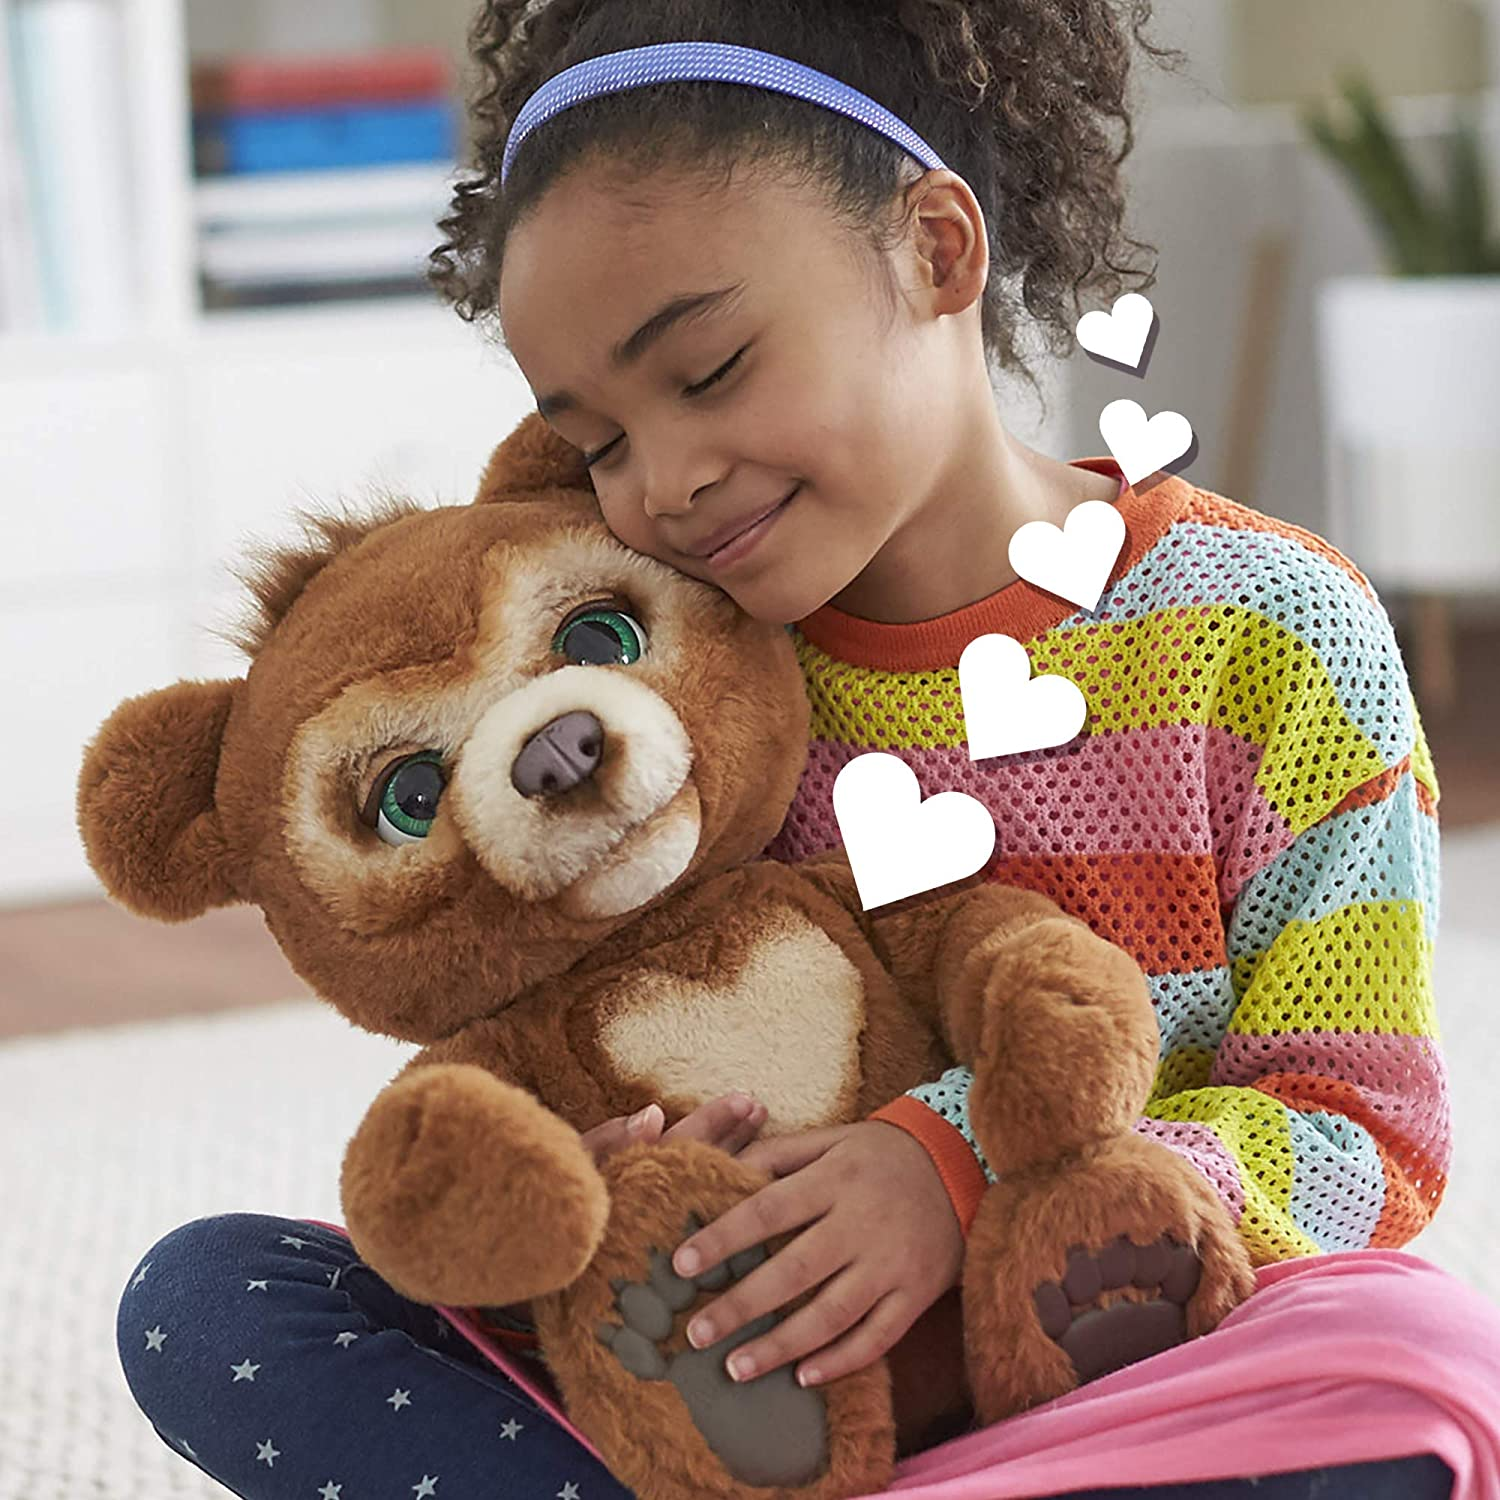 Top 15 Best Electronic Gifts For Kids (2020 Reviews & Buying Guide) 3